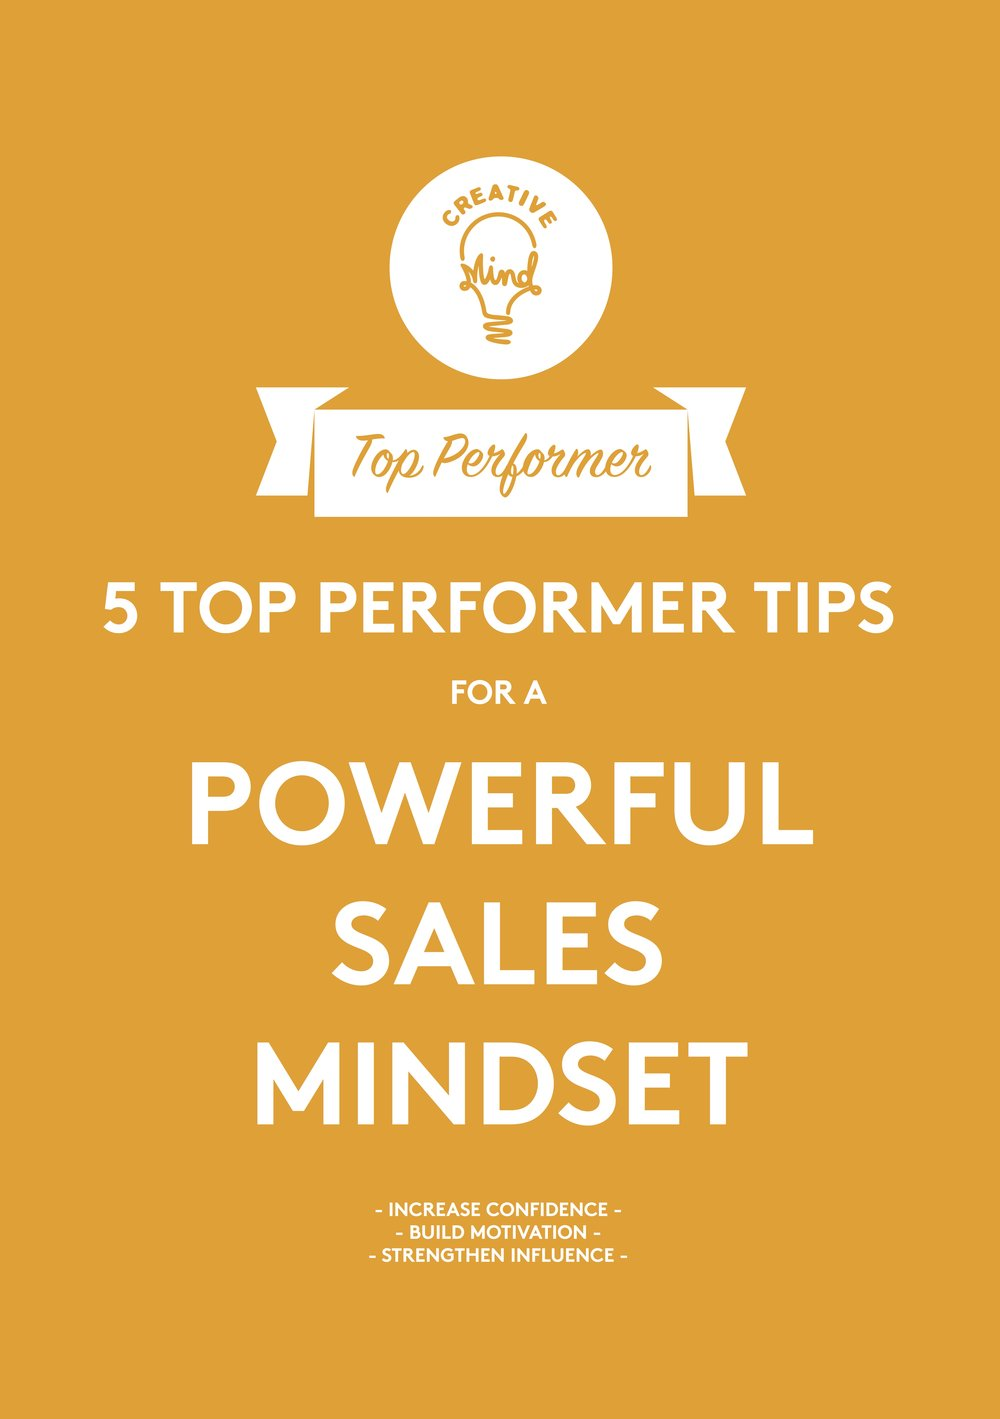 Top Performer Journal_A powerful mindset.jpg